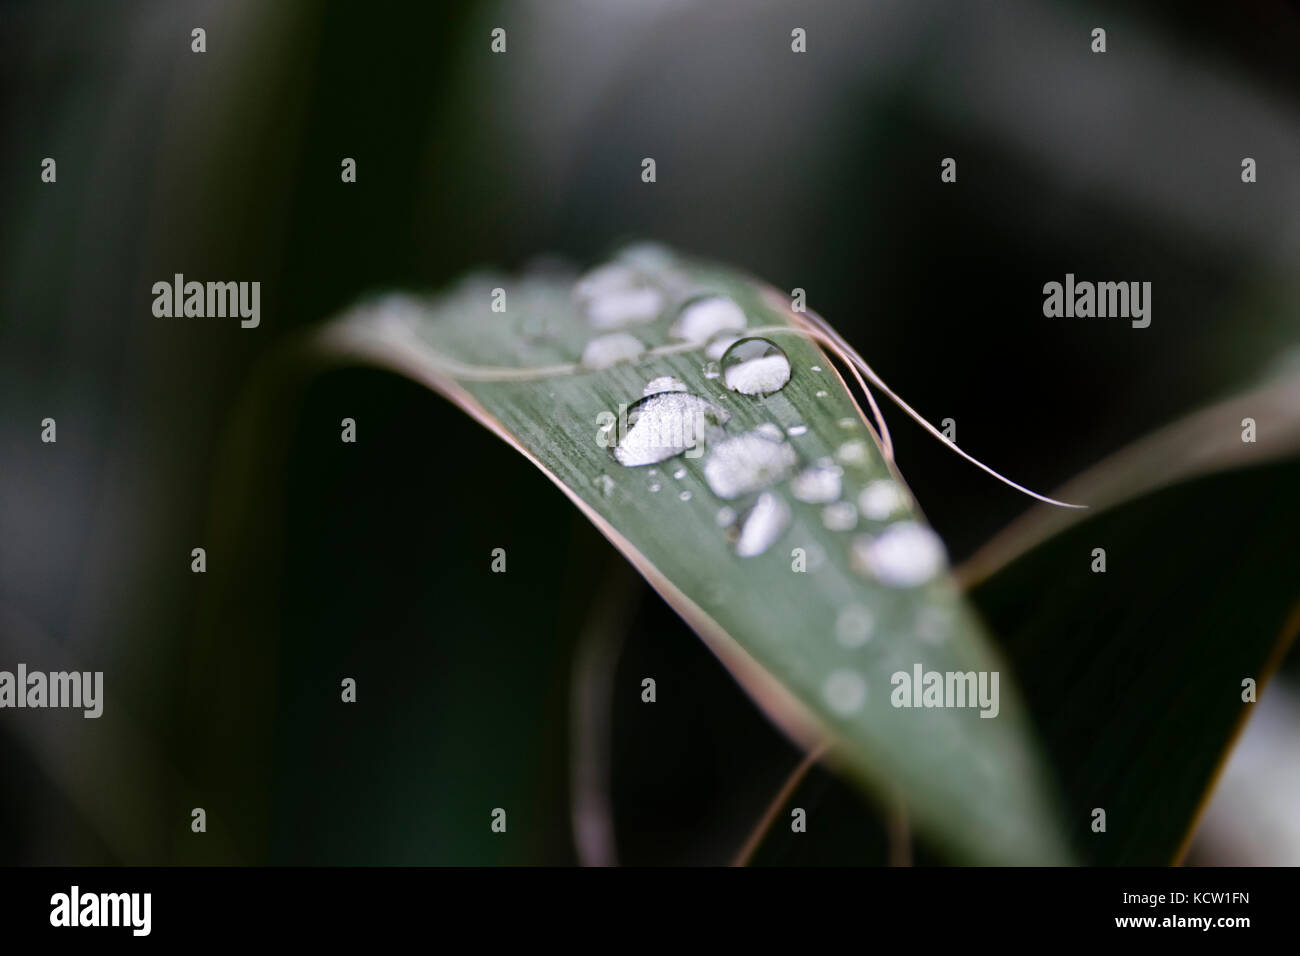 Blade Of Grass With Morning Dew During Sunrise - Stock Image